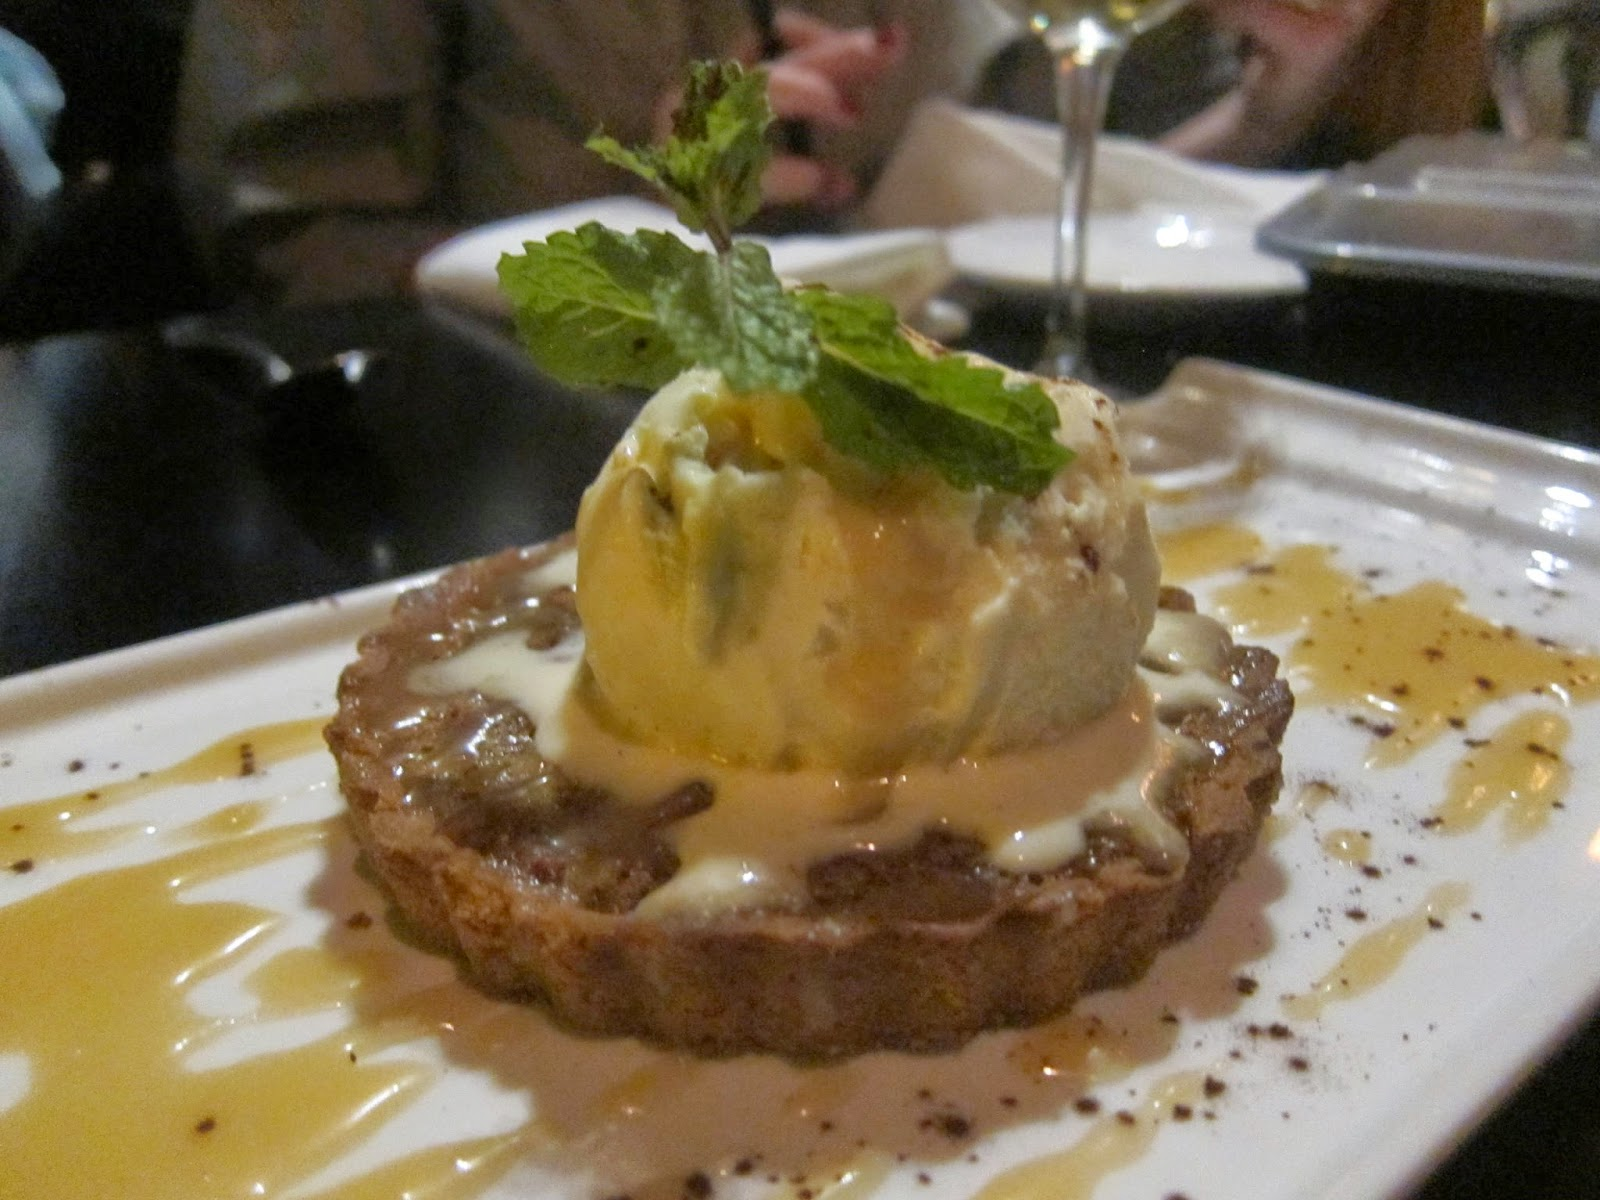 Warm Pecan Pie at Orta | The Economical Eater